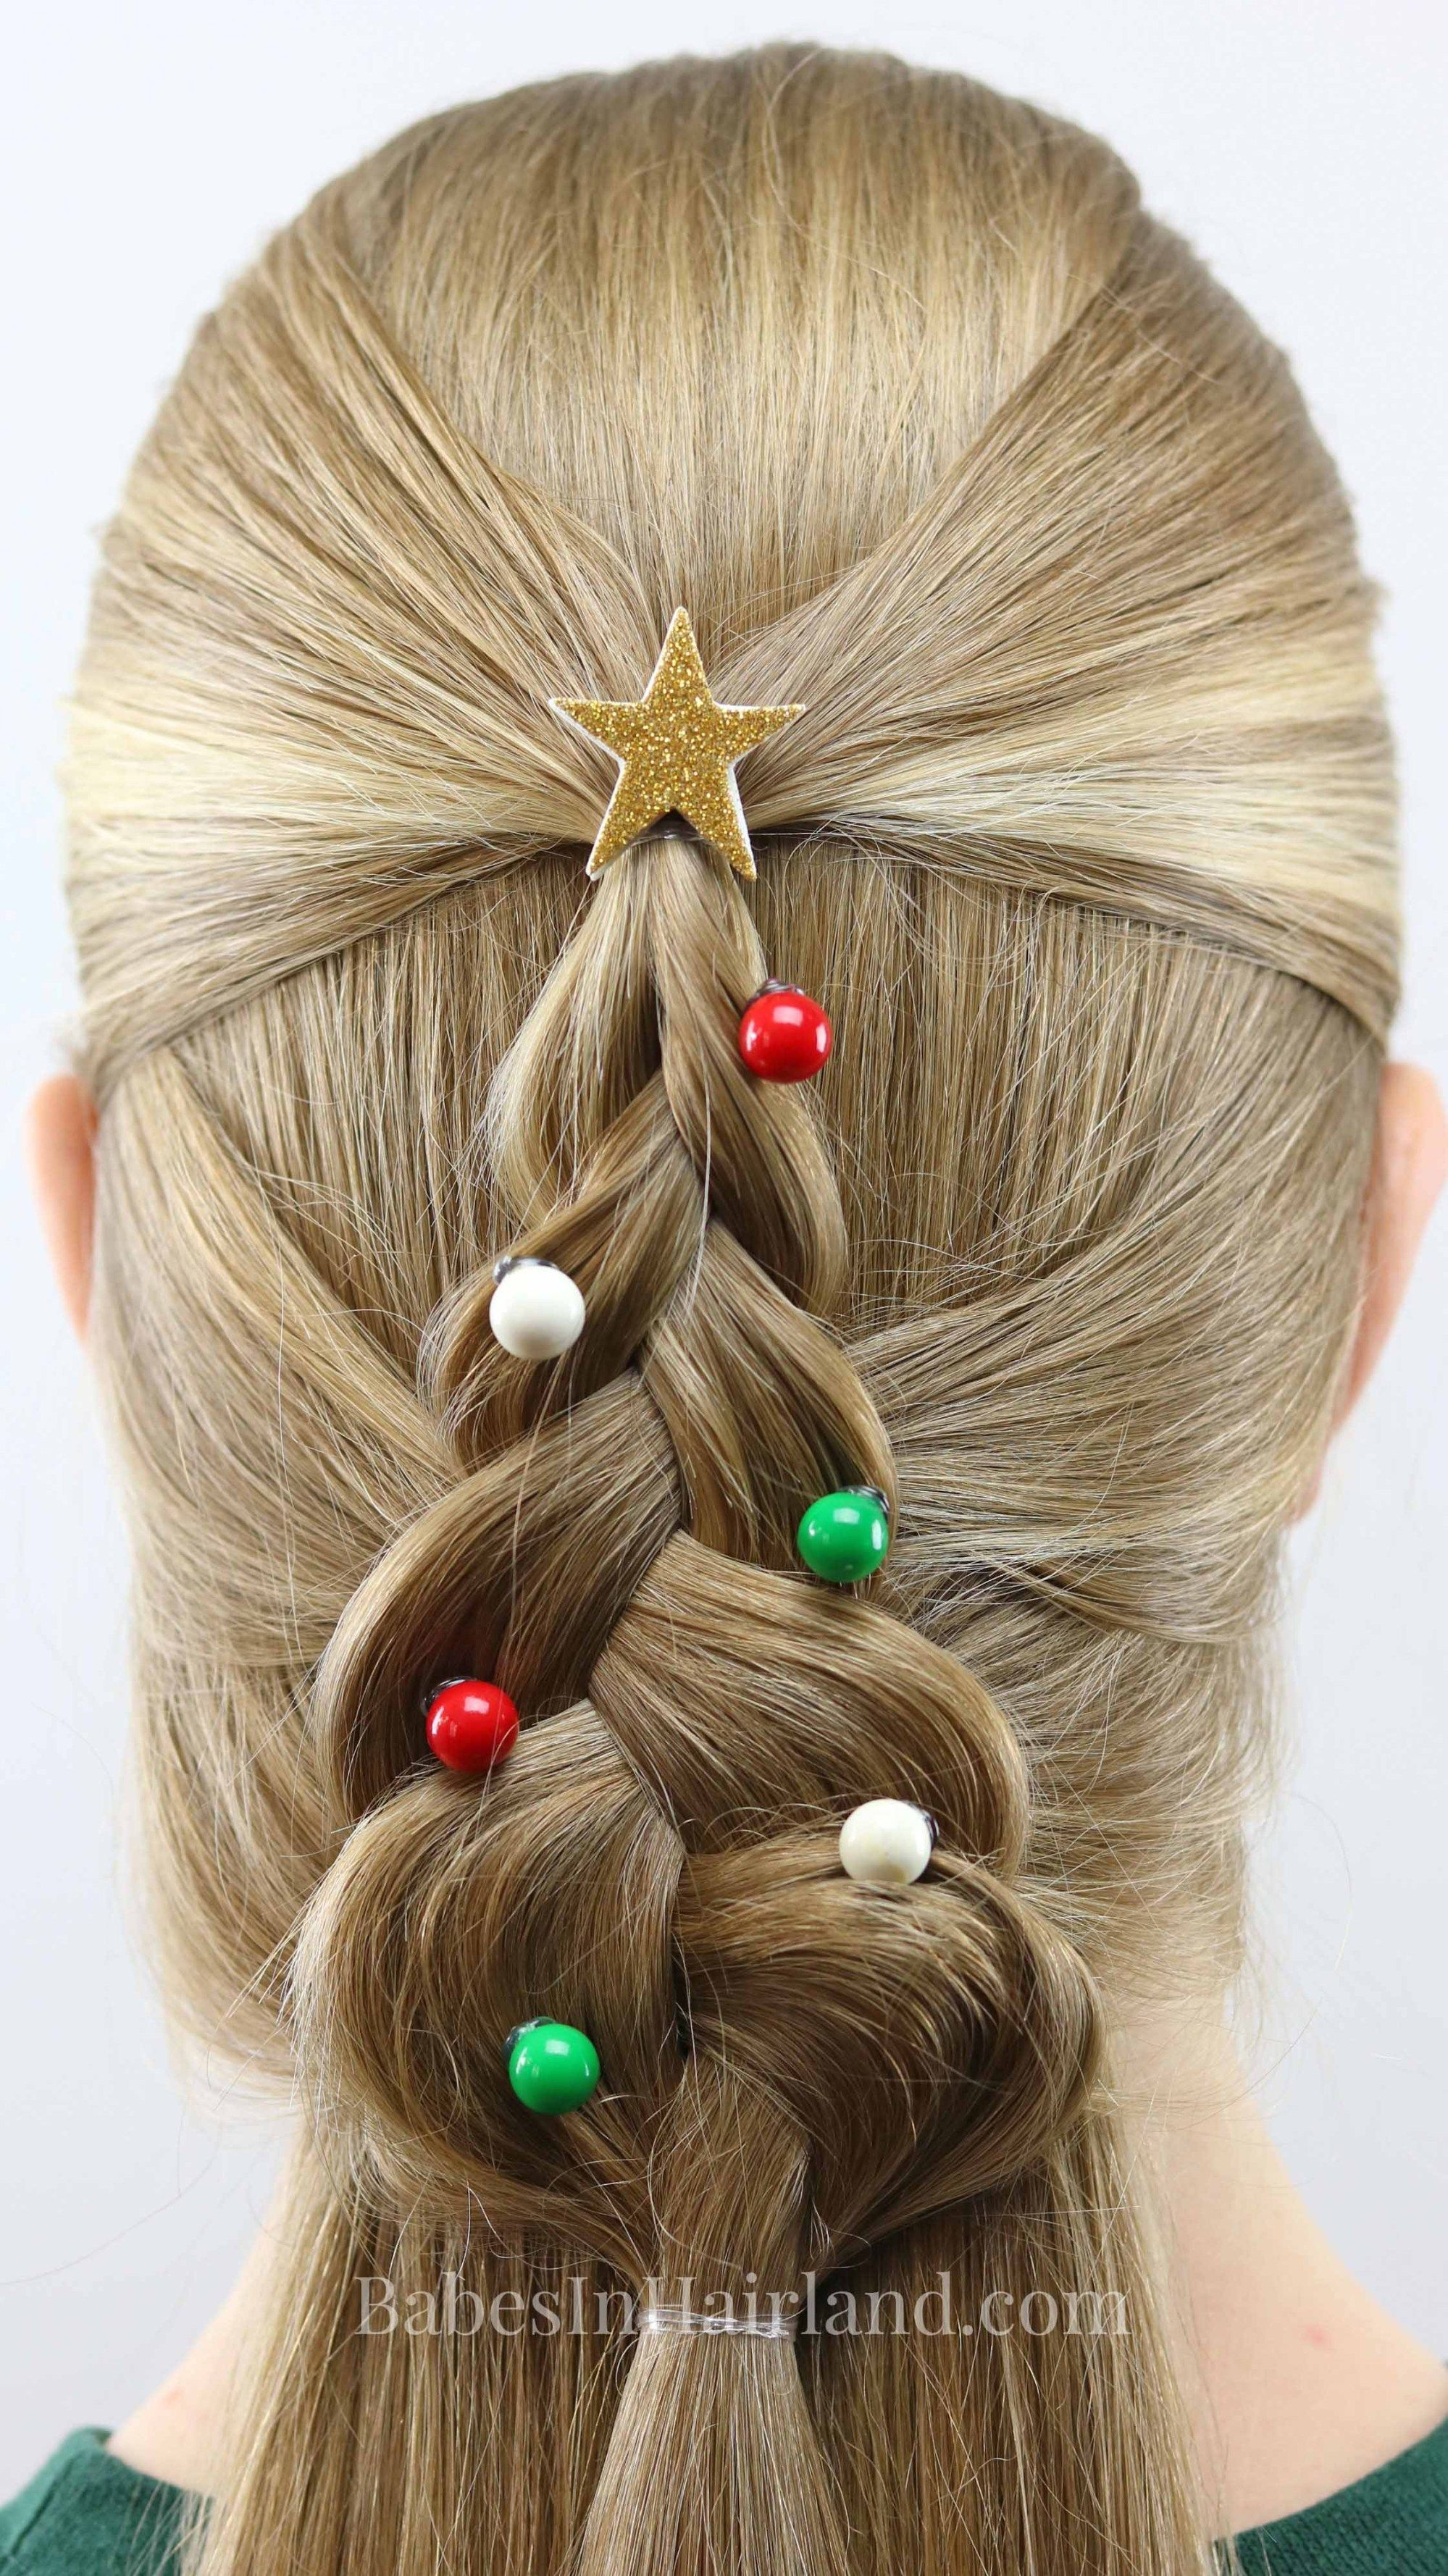 Everyone Girl Needs A Cute Hairstyle For Christmas Try This Pretty Mermaid Braid Christmas Tree From Ba Cool Braid Hairstyles Hair Styles Christmas Hairstyles